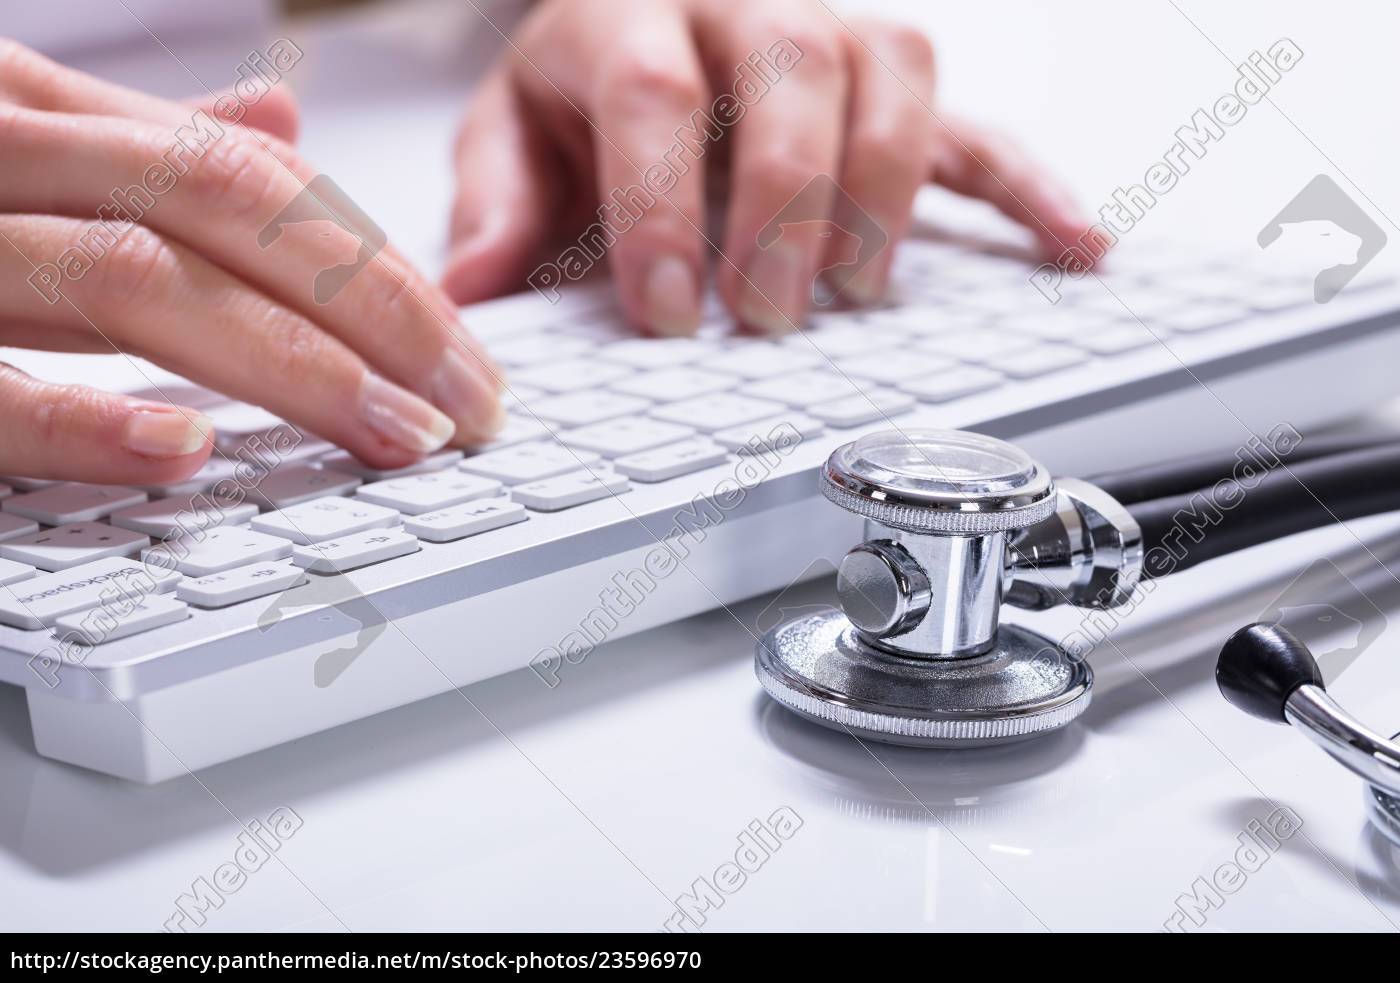 woman's, hand, typing - 23596970